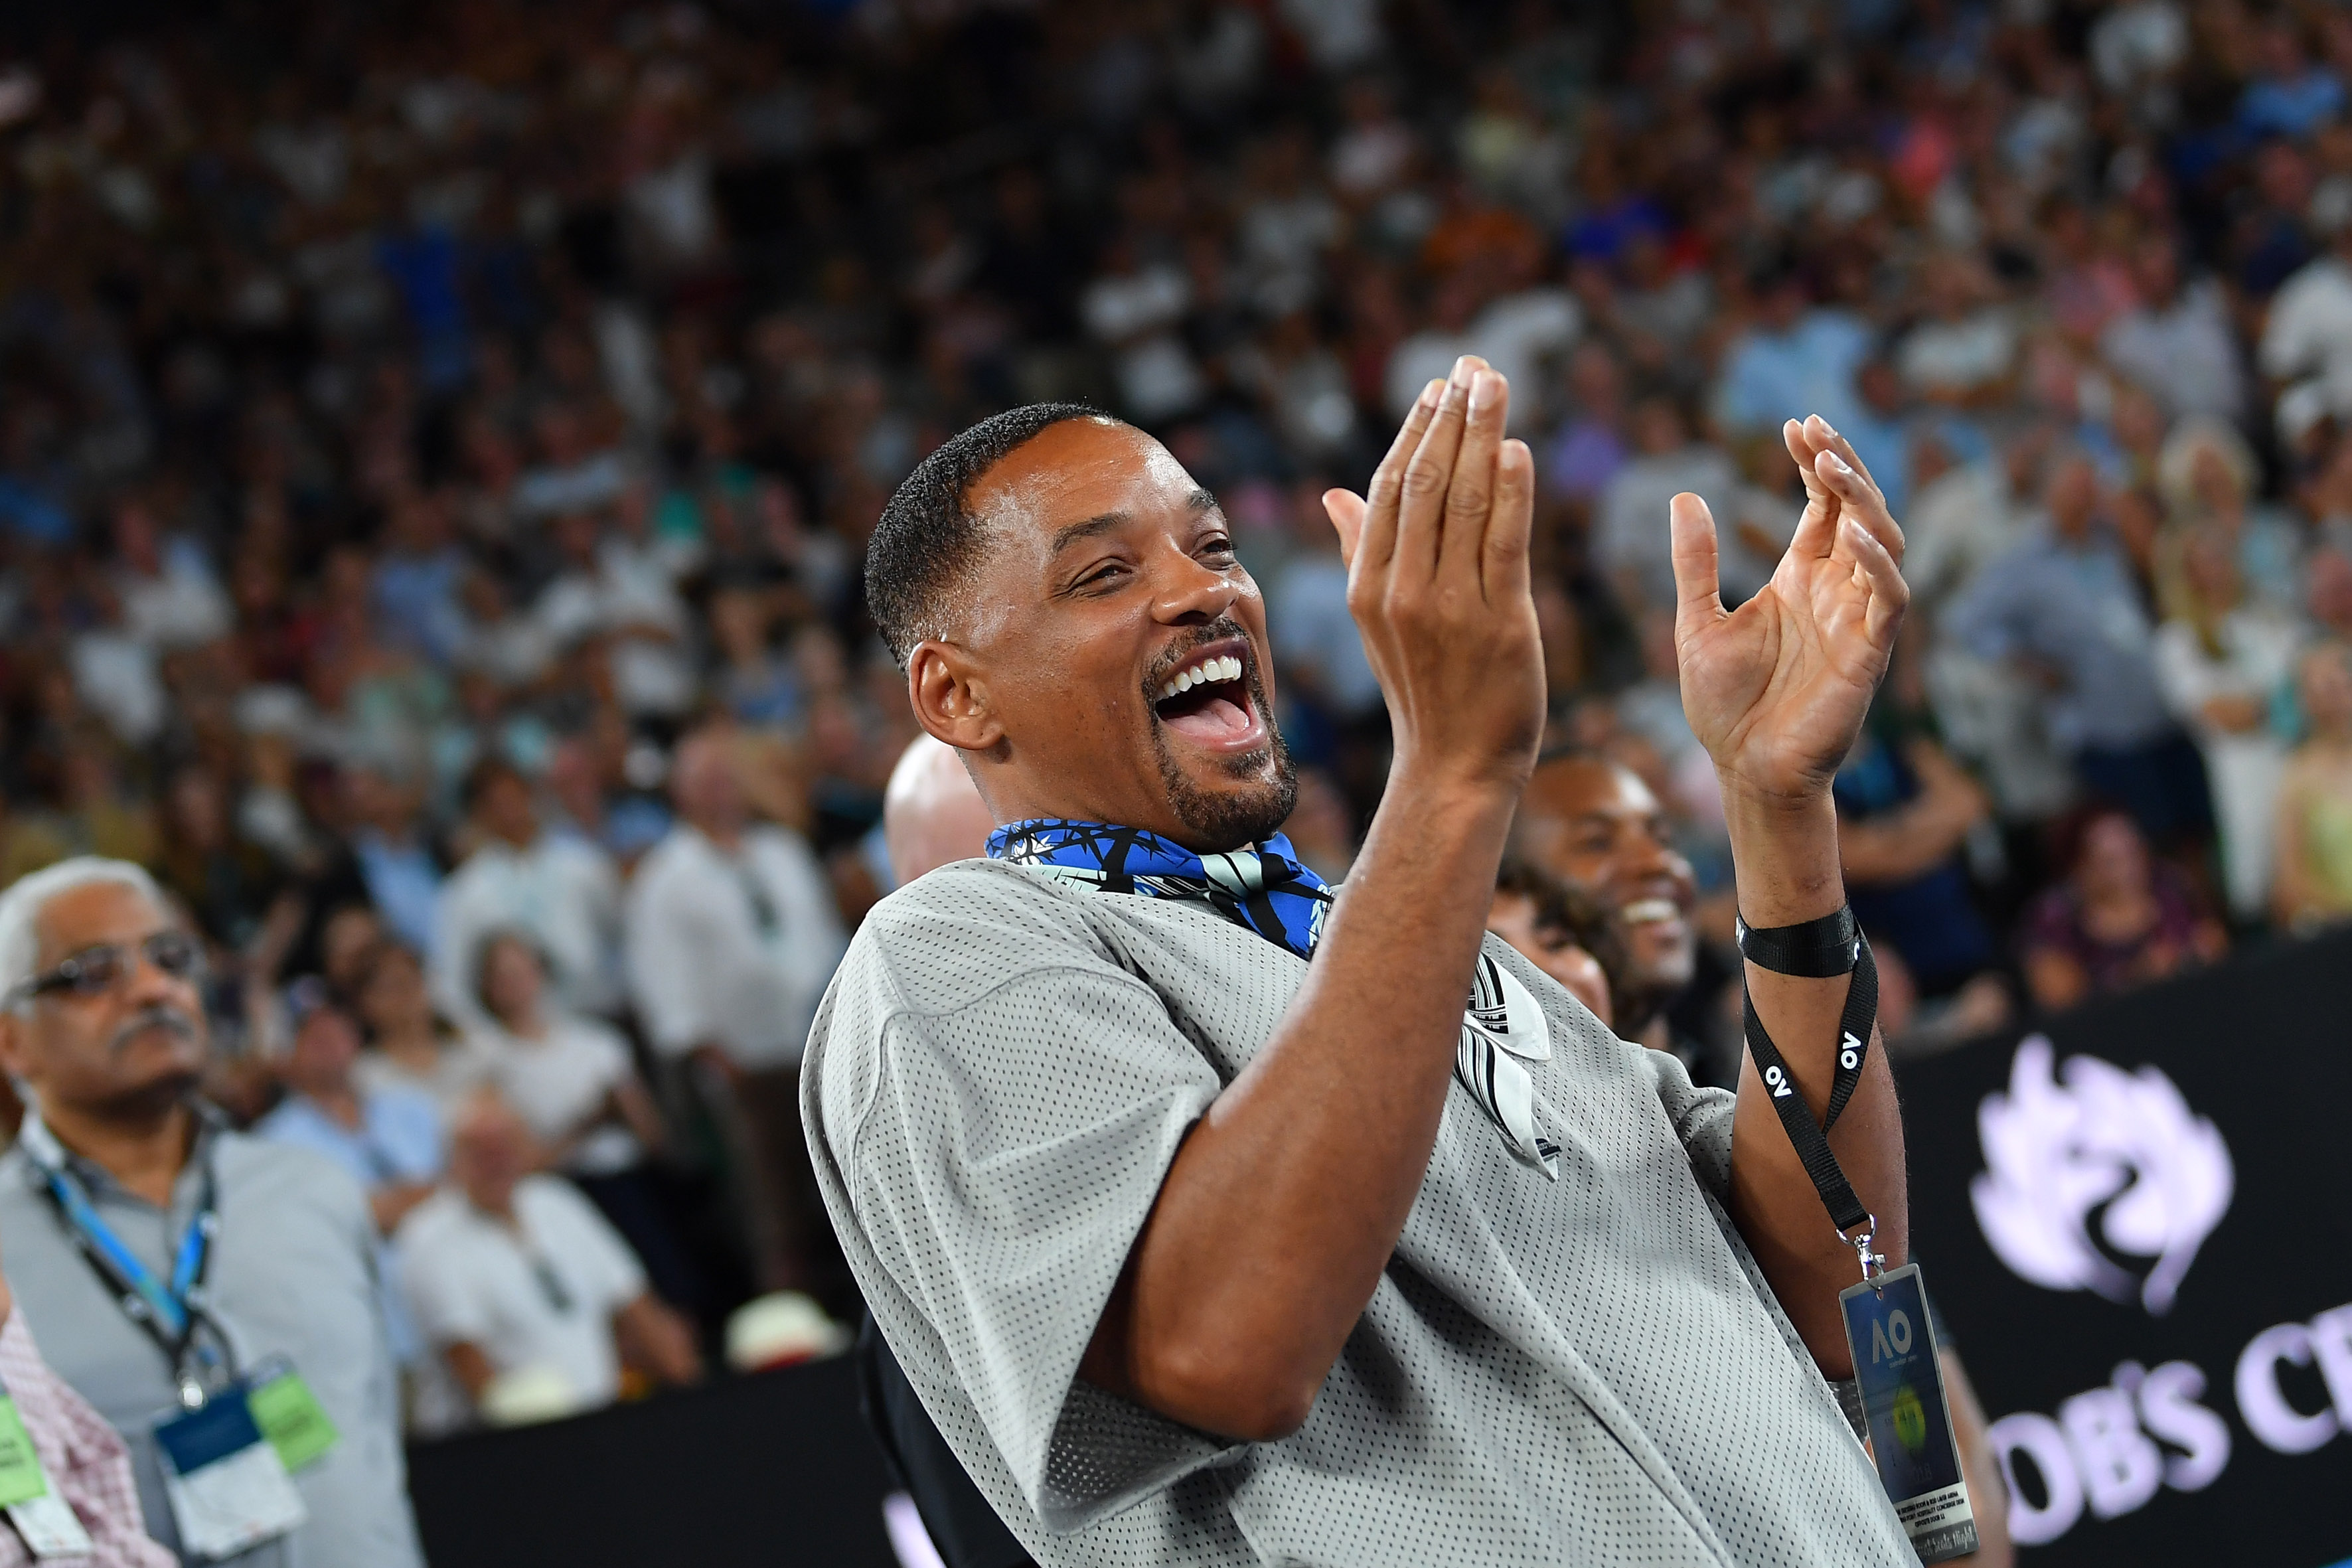 Football - Coupe du monde - Will Smith chantera la chanson officielle de la Coupe du Monde